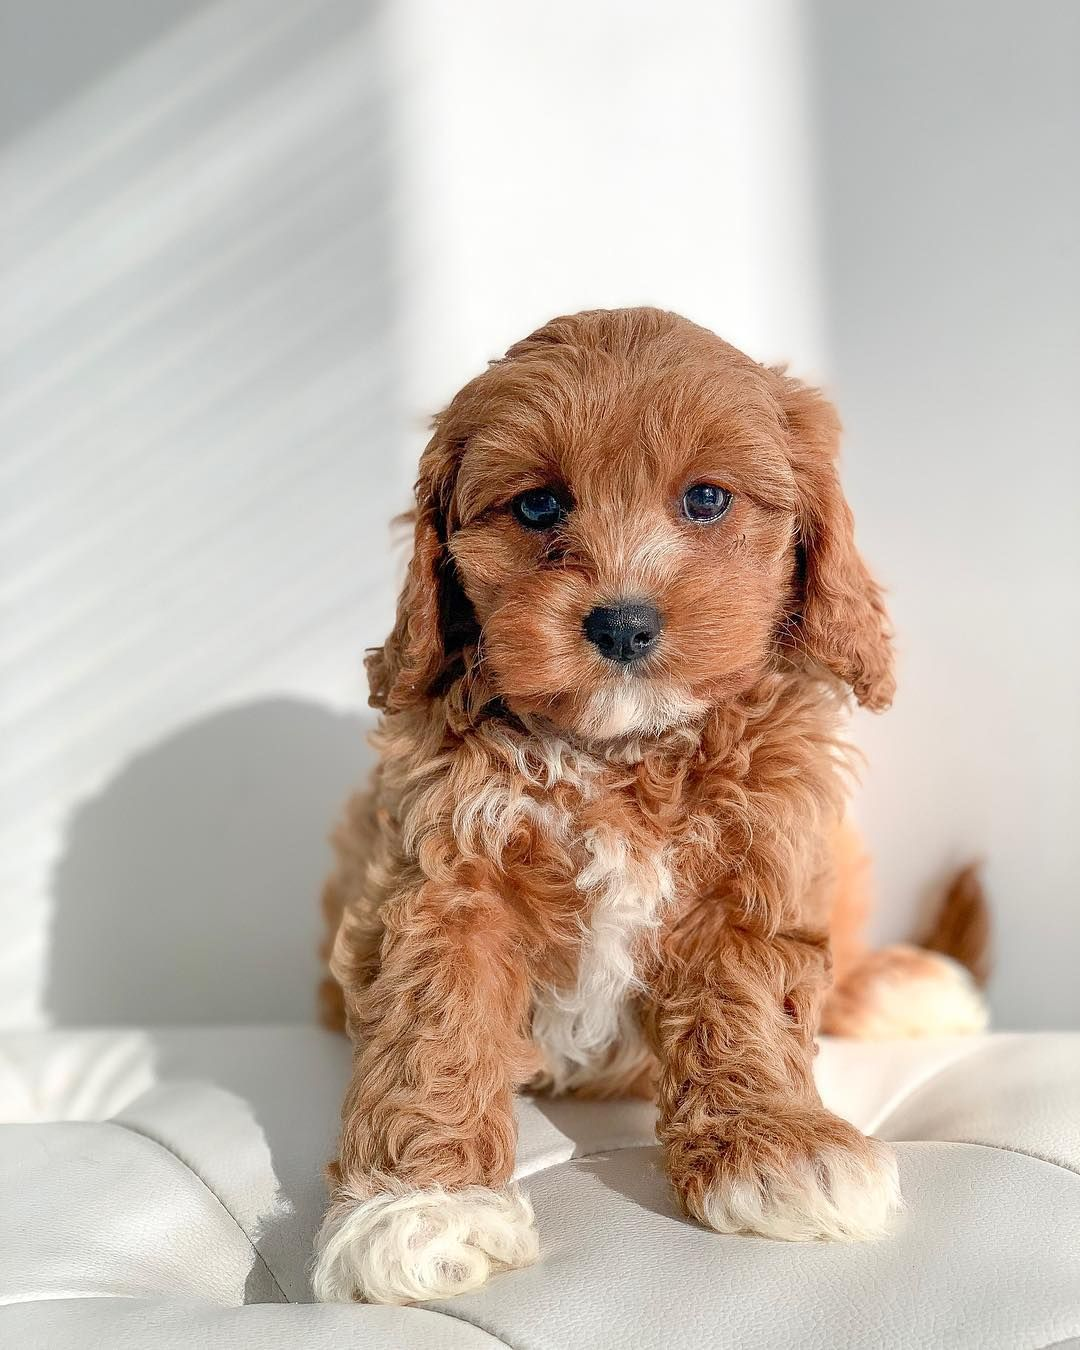 Cute Cavoodle Puppy Cute Dog Pictures Cute Dogs And Puppies Fluffy Puppies